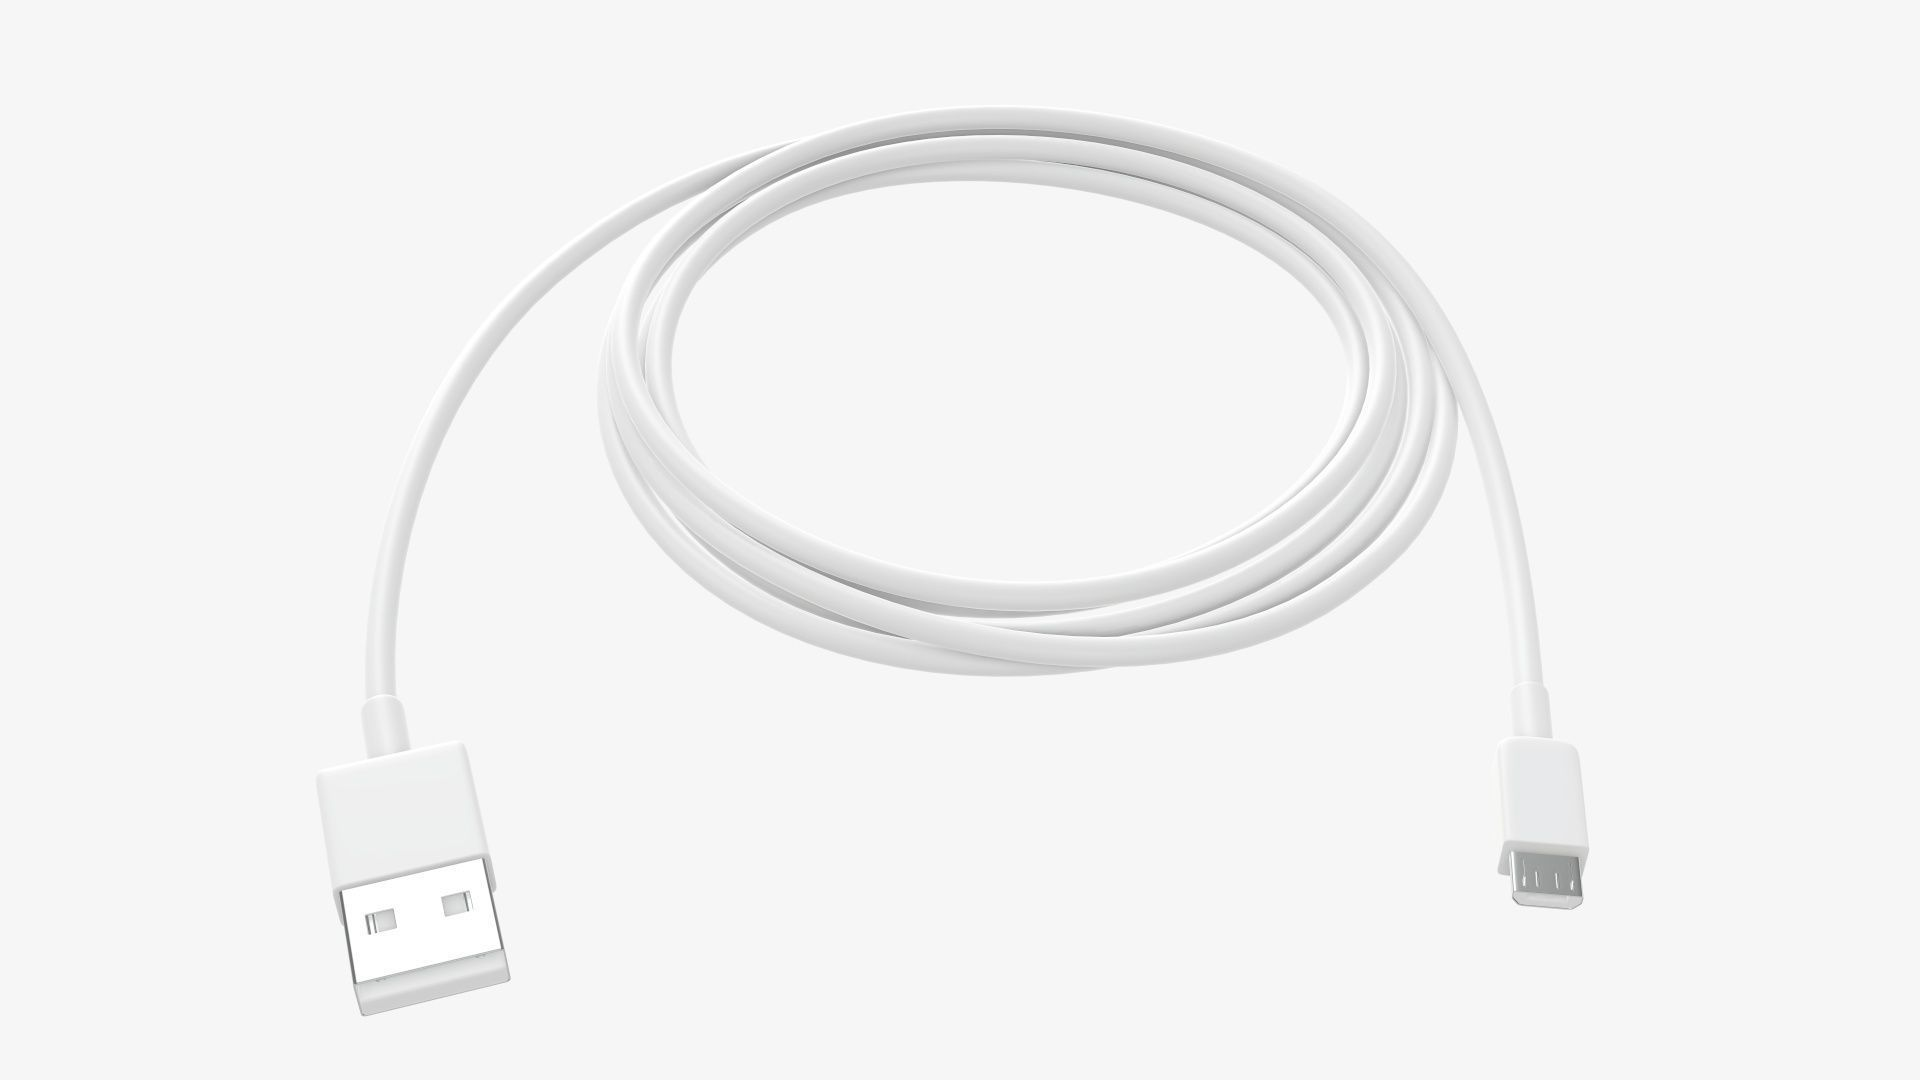 Cable micro-USB to USB white